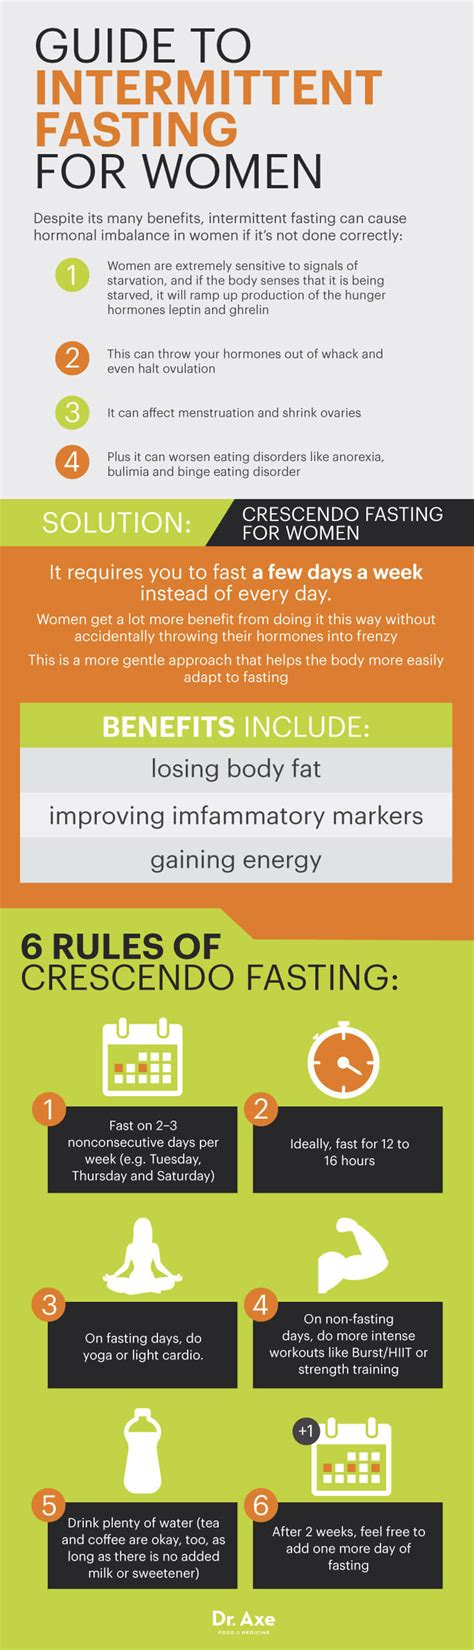 vegetarian intermittent fasting the secret to lasting weight loss easy fasting guides books intermittent fasting for josh axe and